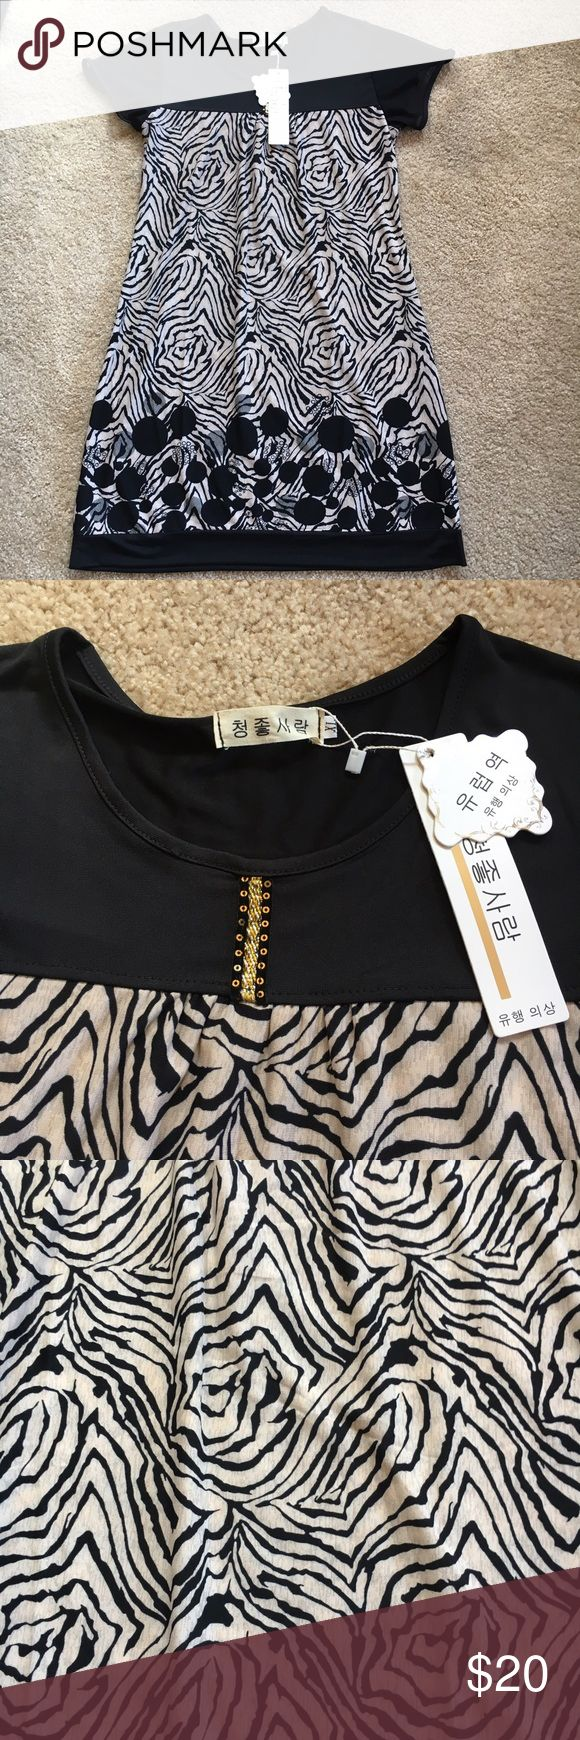 Dress, Zebra Print Black/Beige Summer Brand new with tags, I don't know what it says. It was a gift but its not me, never tried it on. Cute detail in front, great as a beach cover up or any other summer activity. It's light, so I'm sure it won't get you too hot. Sleeves are sheer and has that edgy animal print! Hurry before it's gone, everything must go! Bundle and save on shipping! Says XL most likely in juniors sizing and I'd say it's more M/L but really could fit a small too if you like…